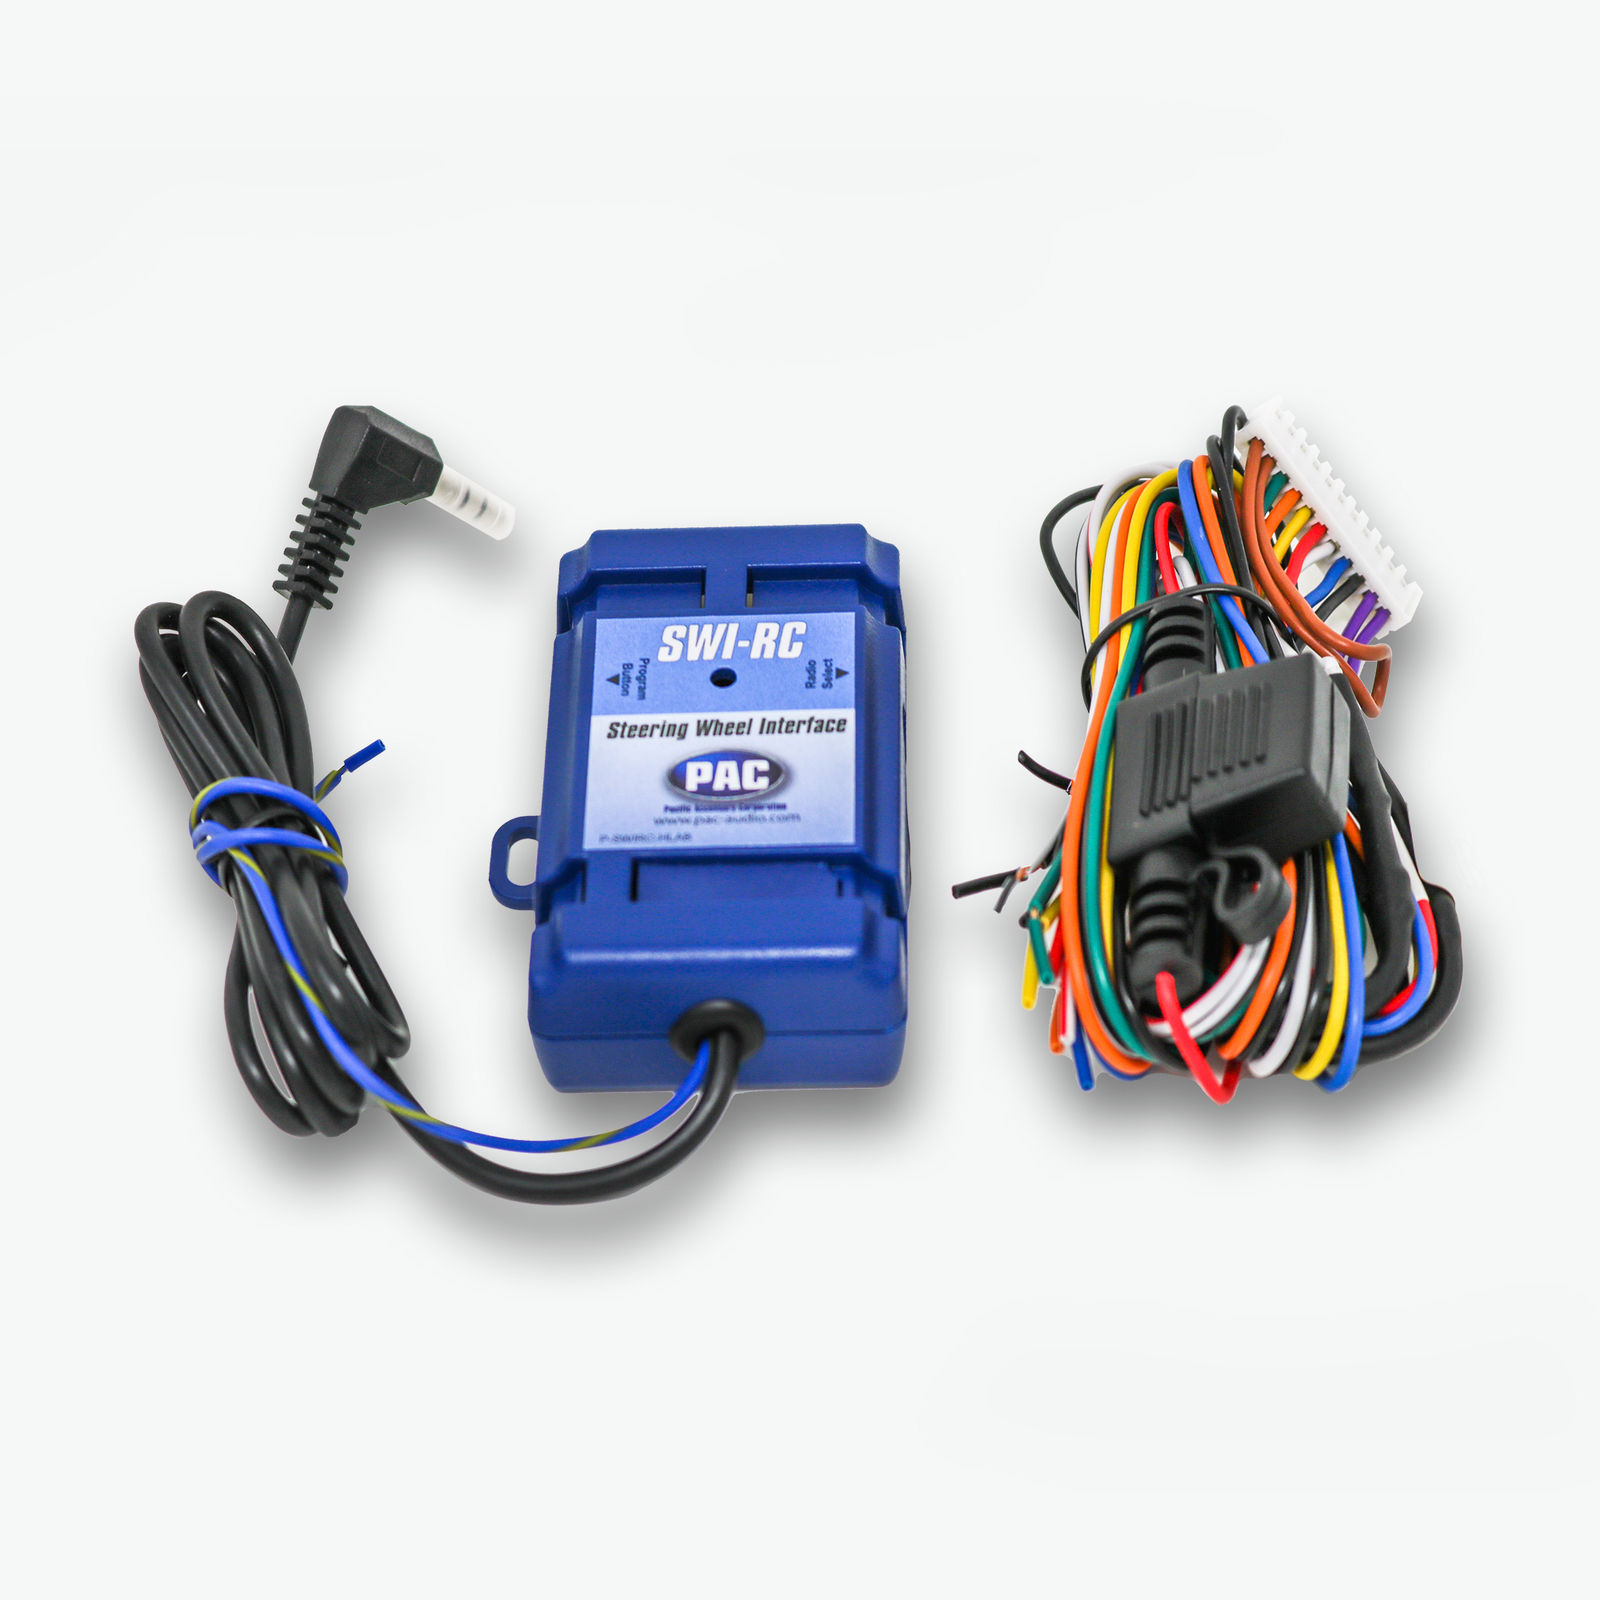 details about pac swi-rc steering wheel control retention interface adapter  swi-jack + swi-ps